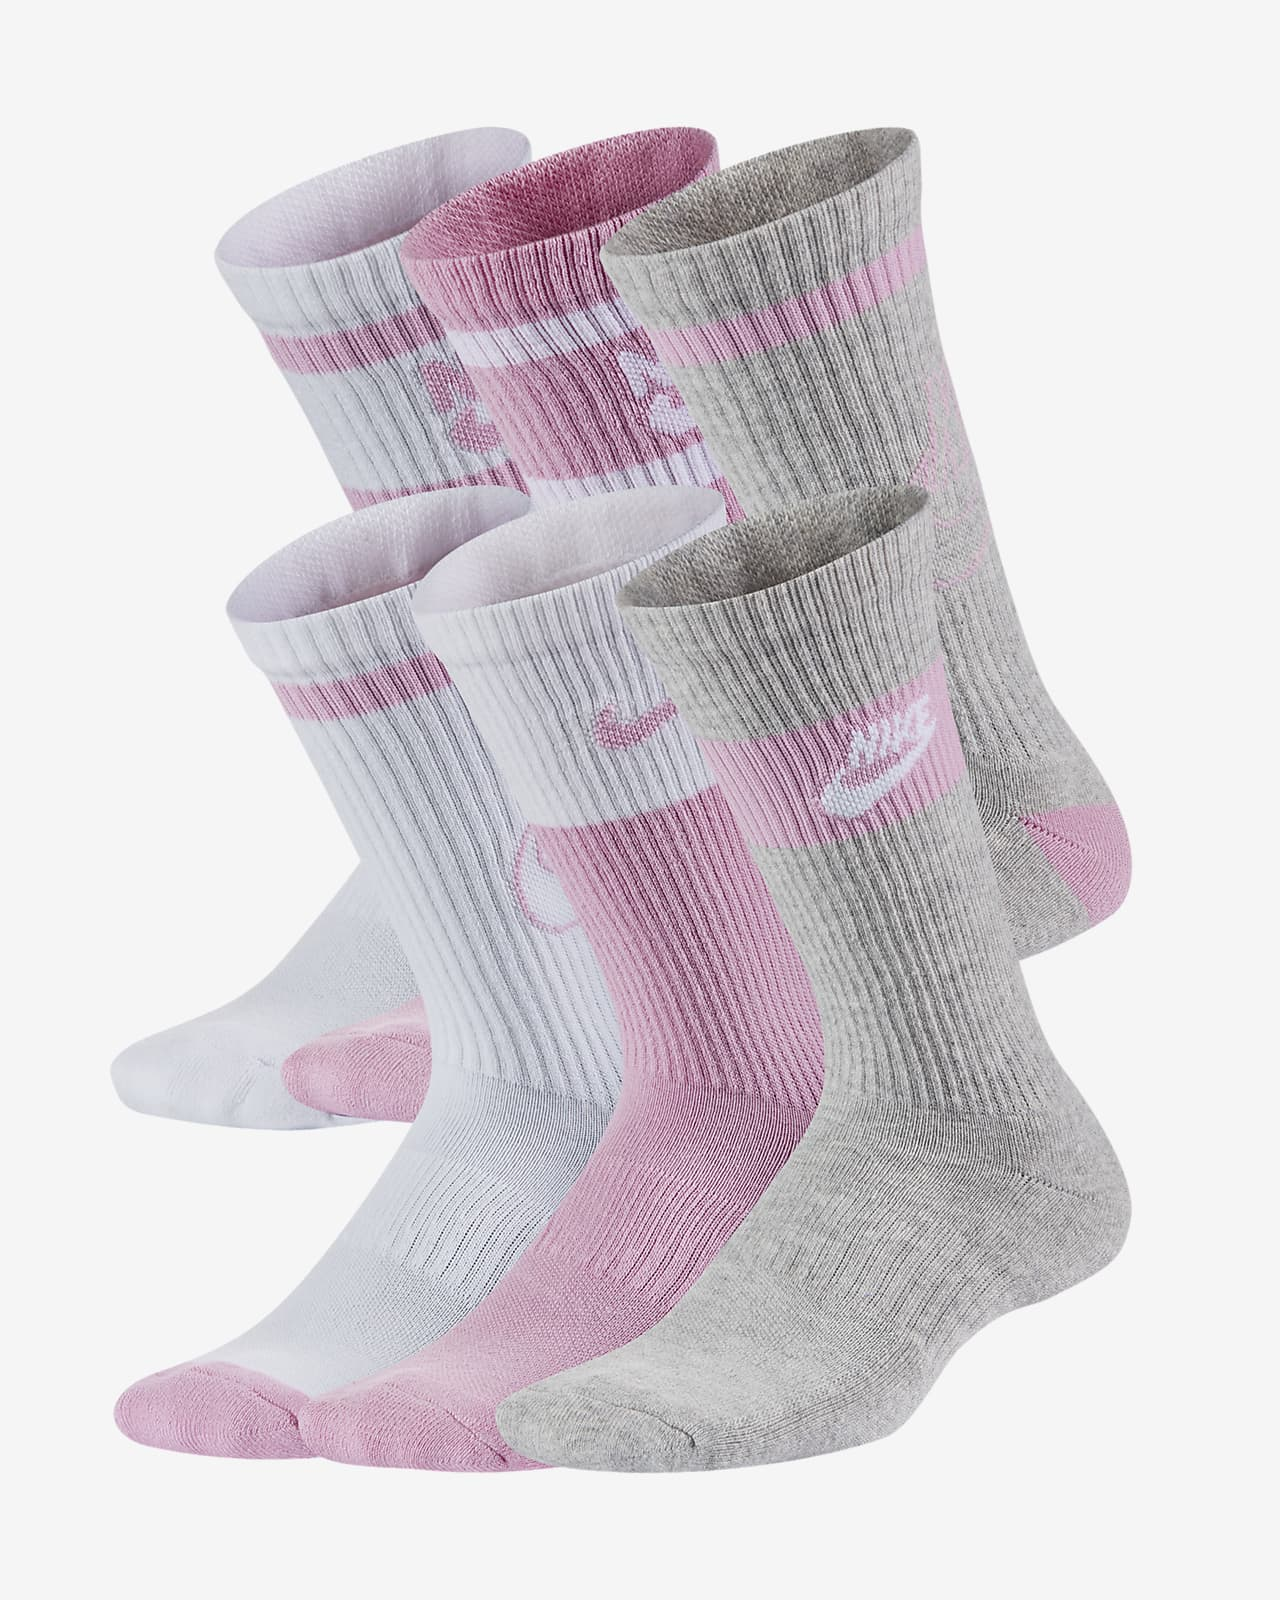 Nike Everyday gepolsterte Crew-Kindersocken (6 Paar)